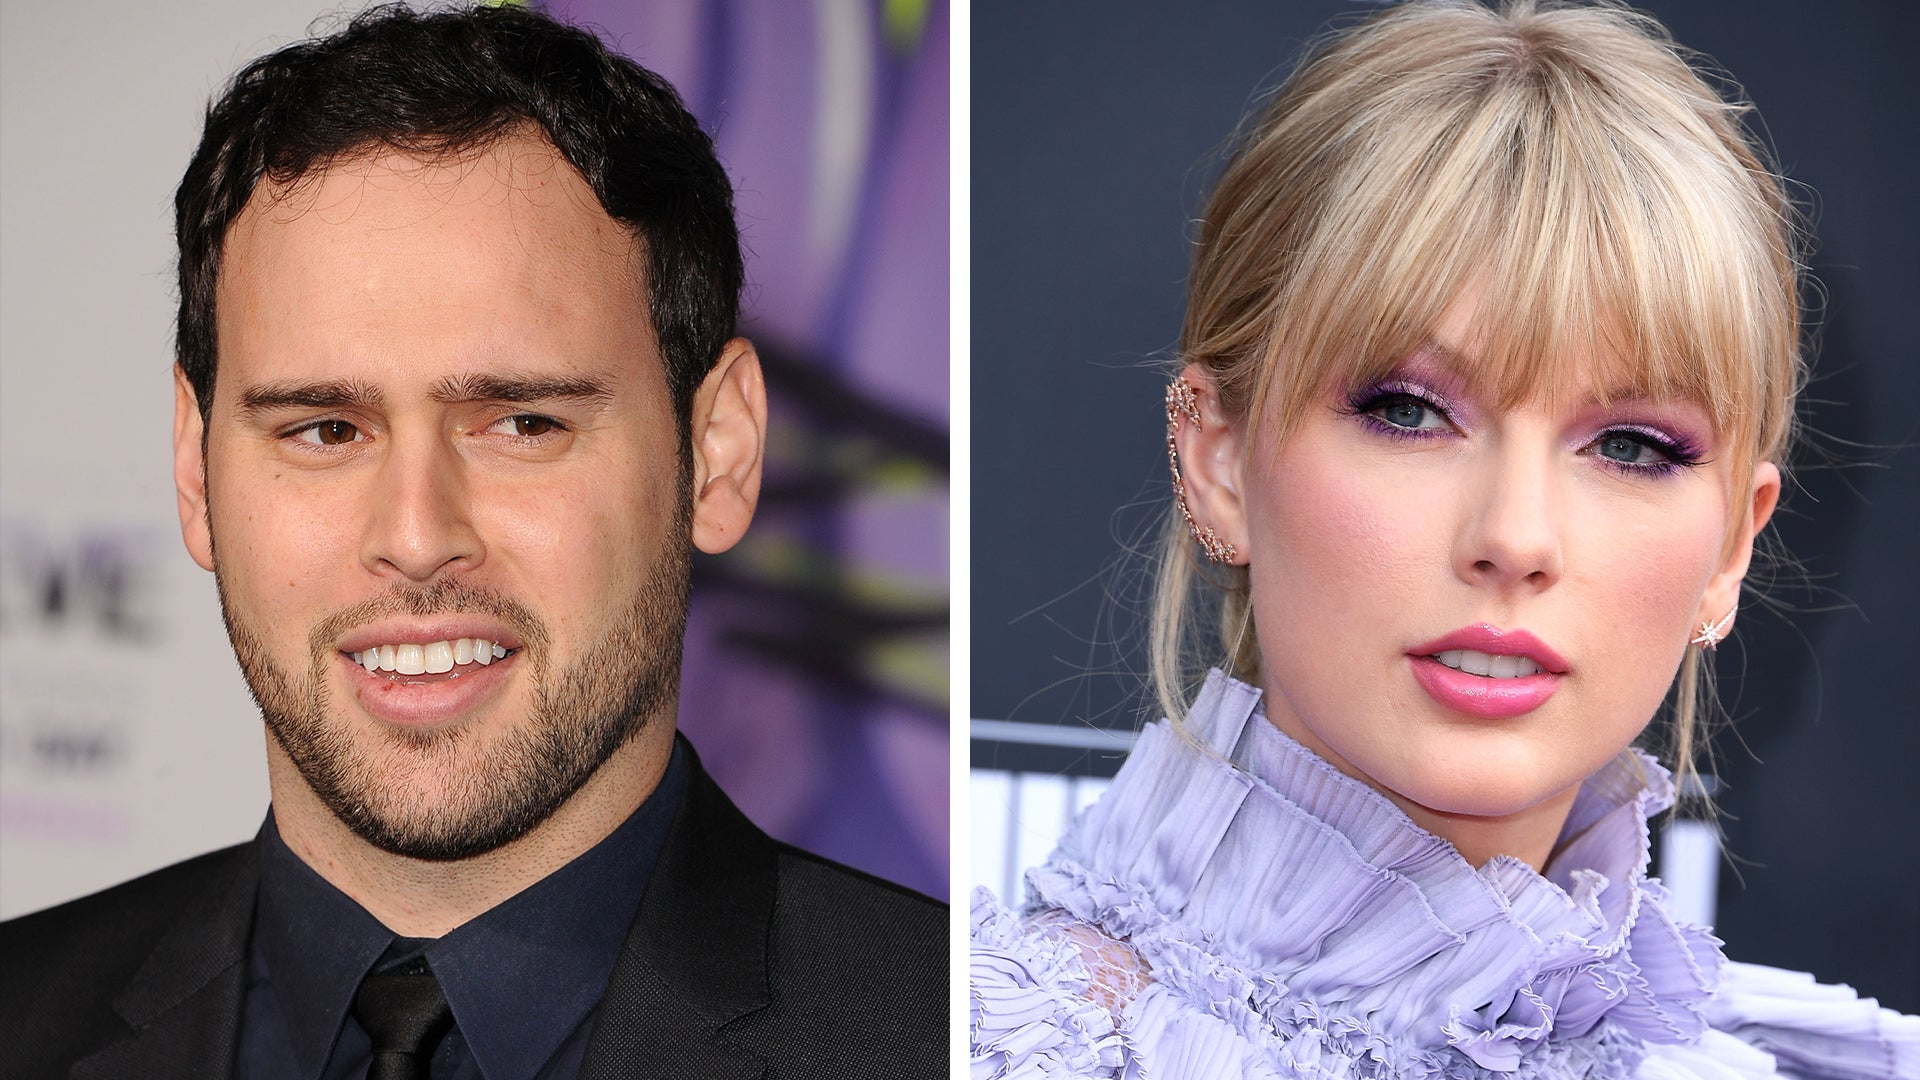 Scooter Braun Breaks Silence on Taylor Swift Drama